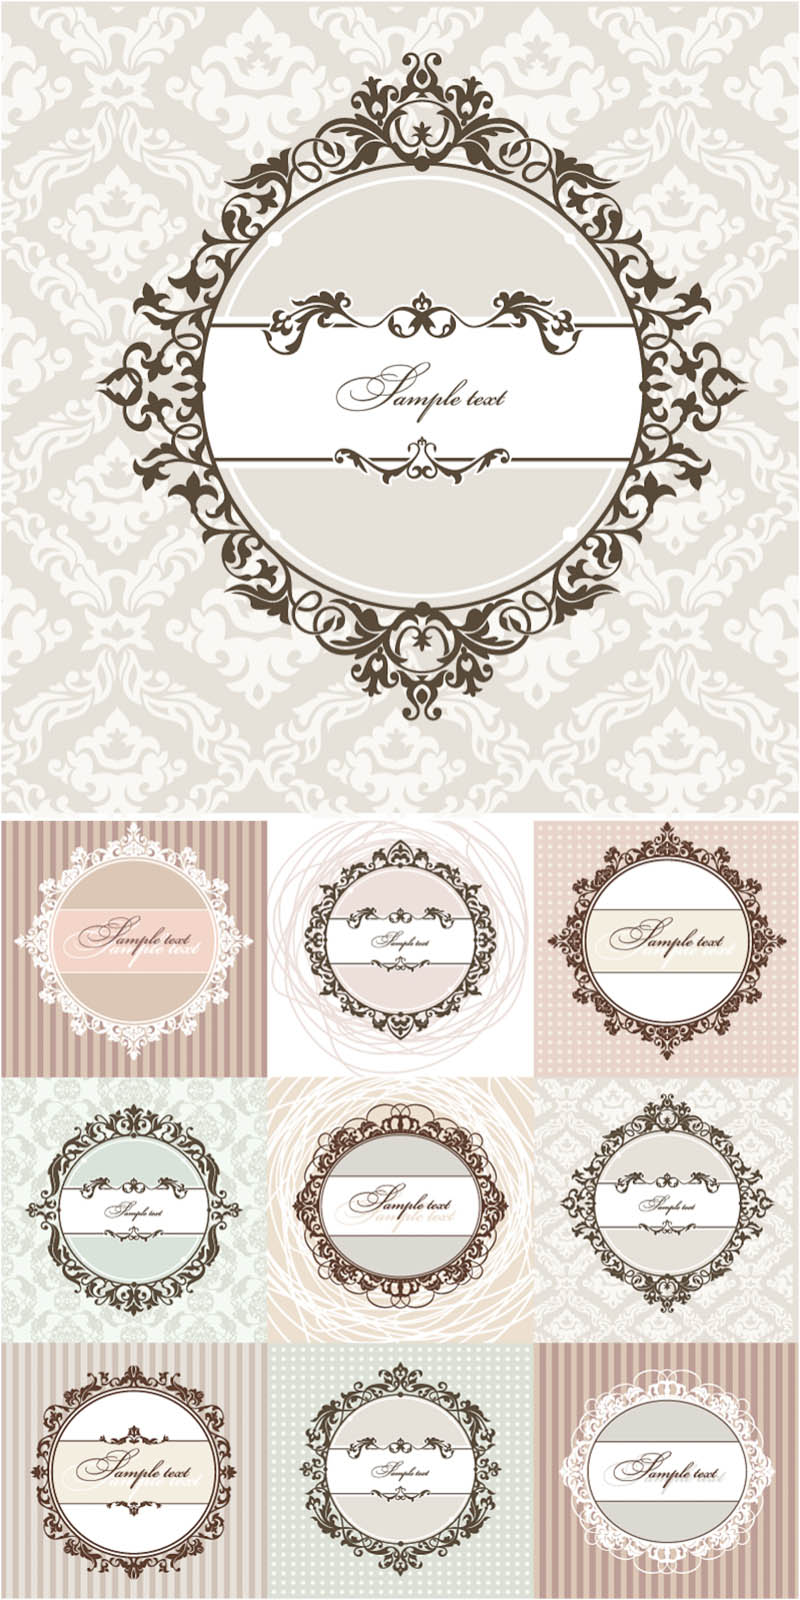 18 Free Vintage Vector Art Images